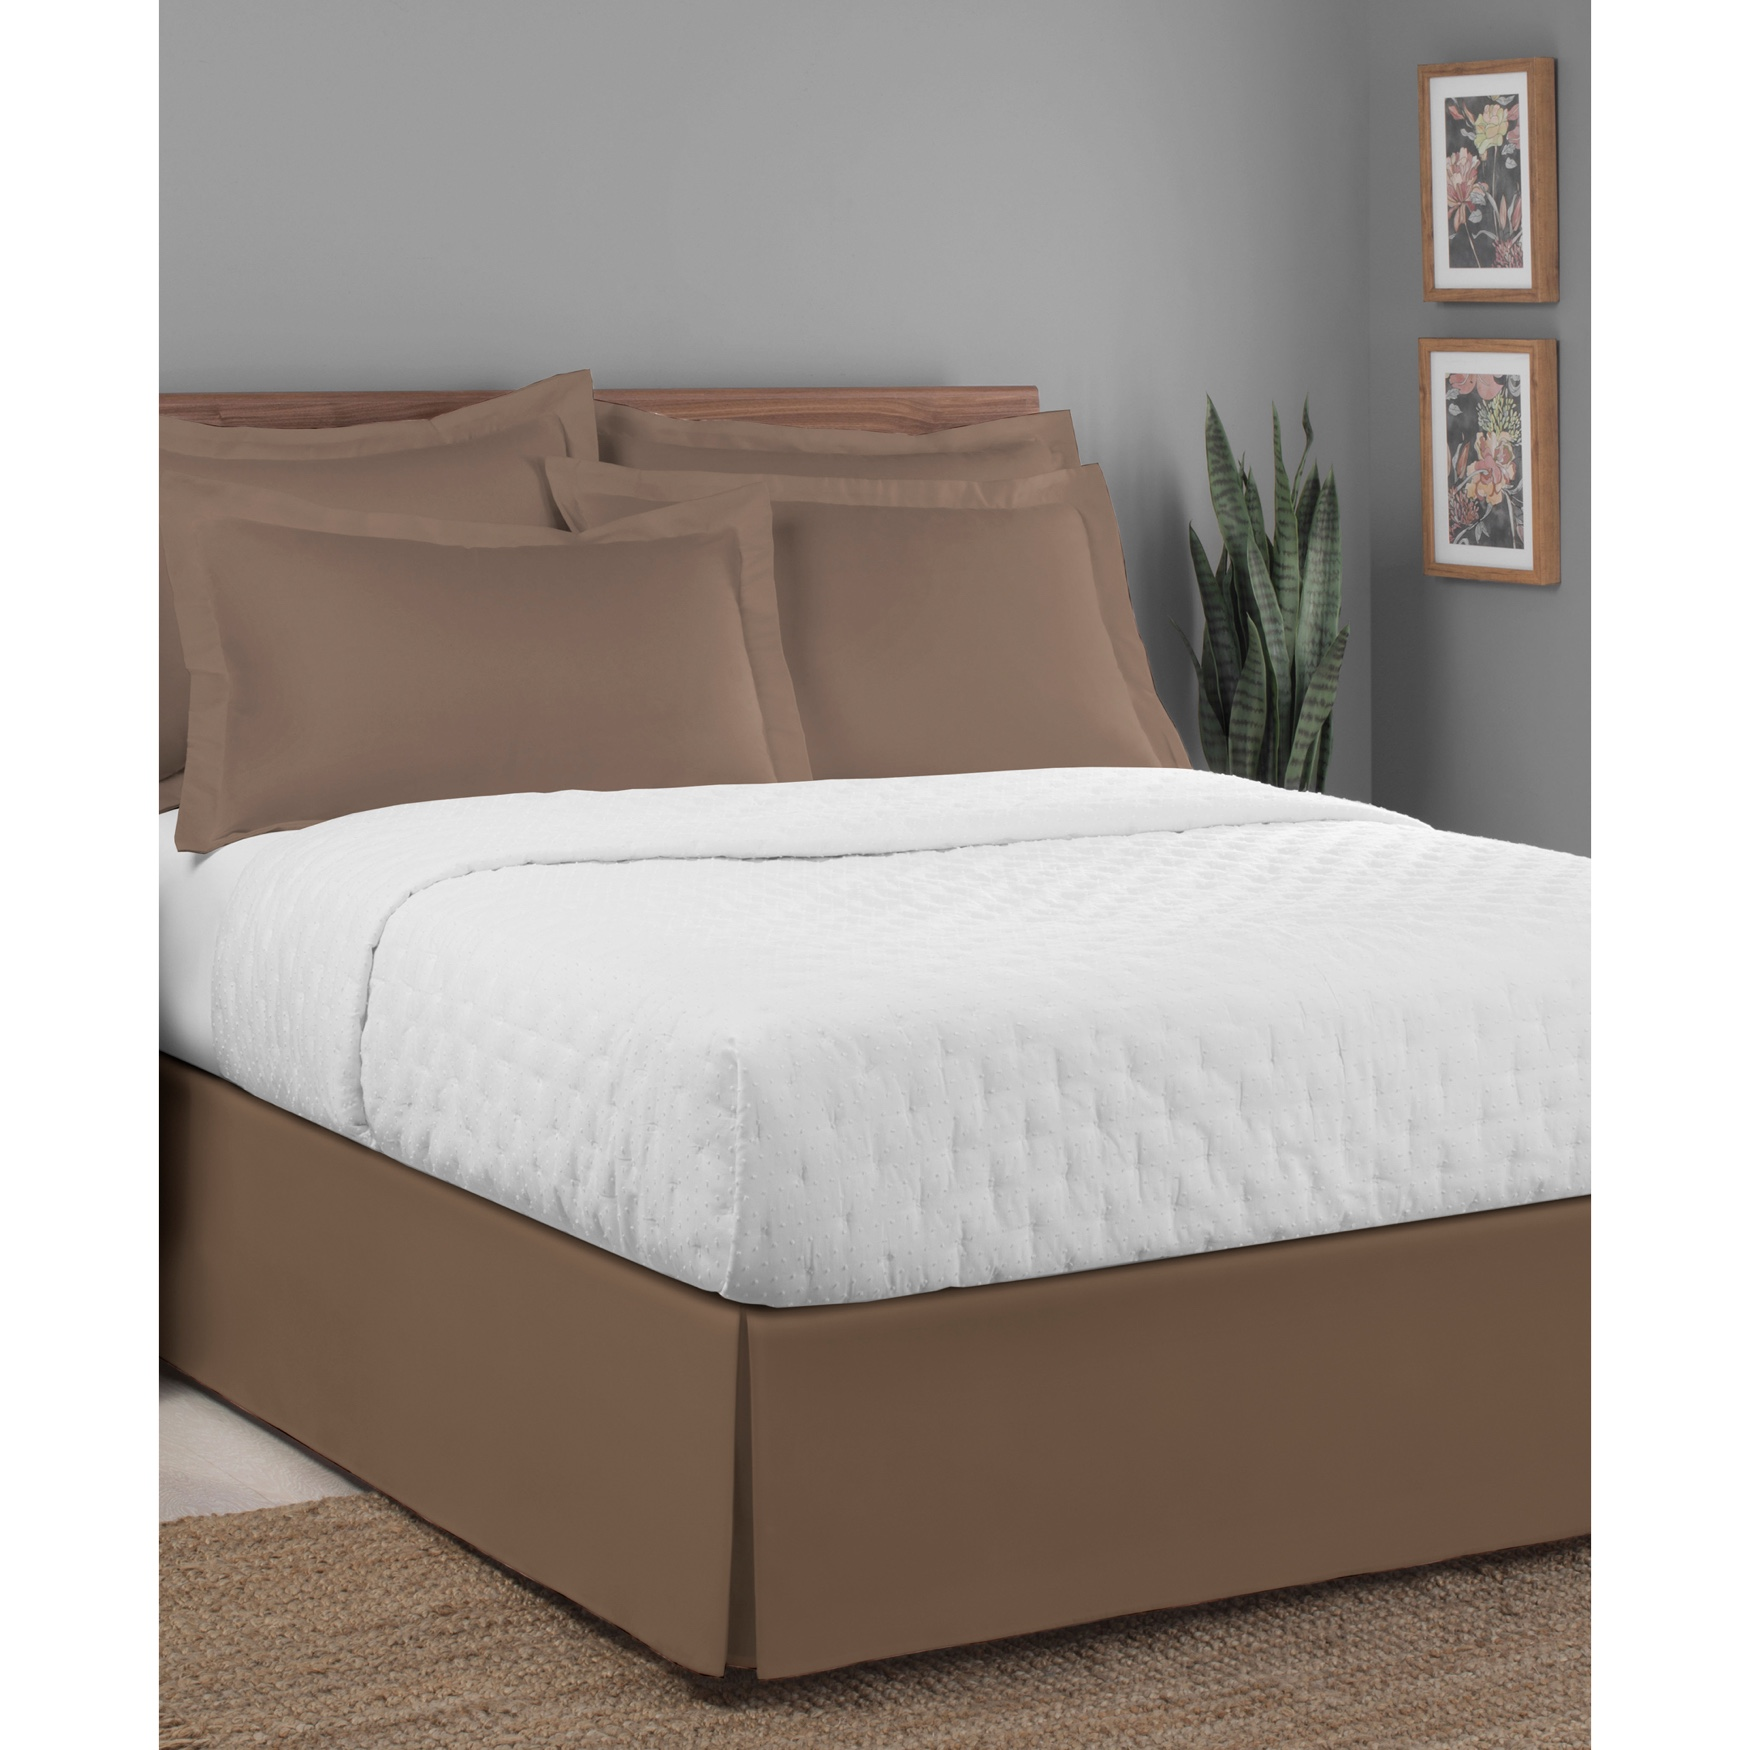 "Luxury Hotel Classic Tailored 14"" Drop Mocha Bed Skirt,"